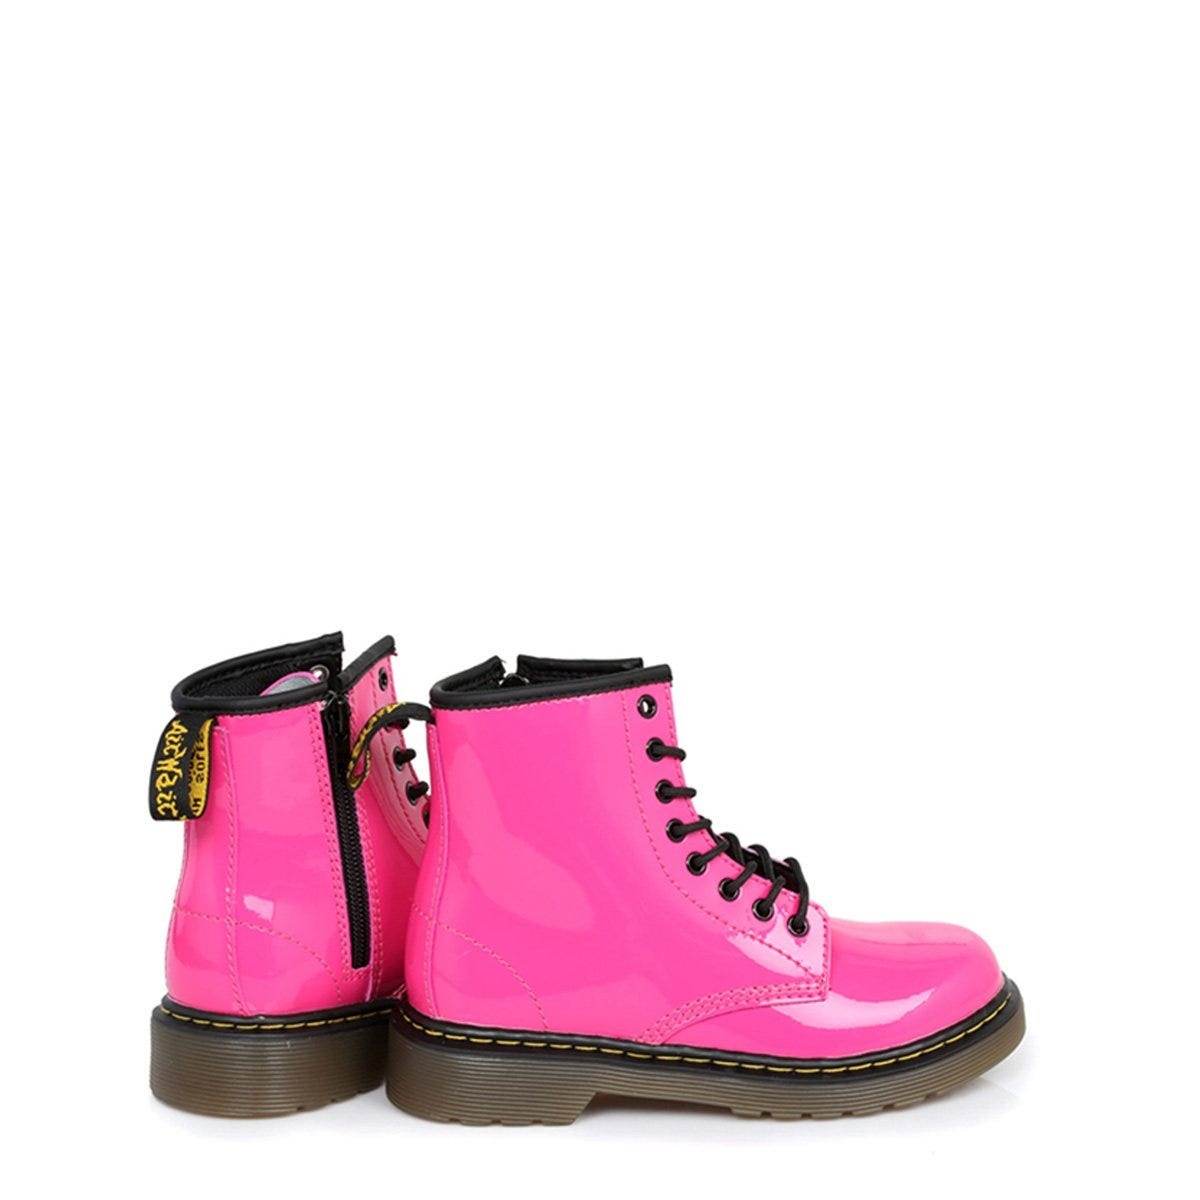 Dr-Martens-Enfants-Delaney-Hot-Rose-Chaussures-Bottes-Bottines-Decontractees